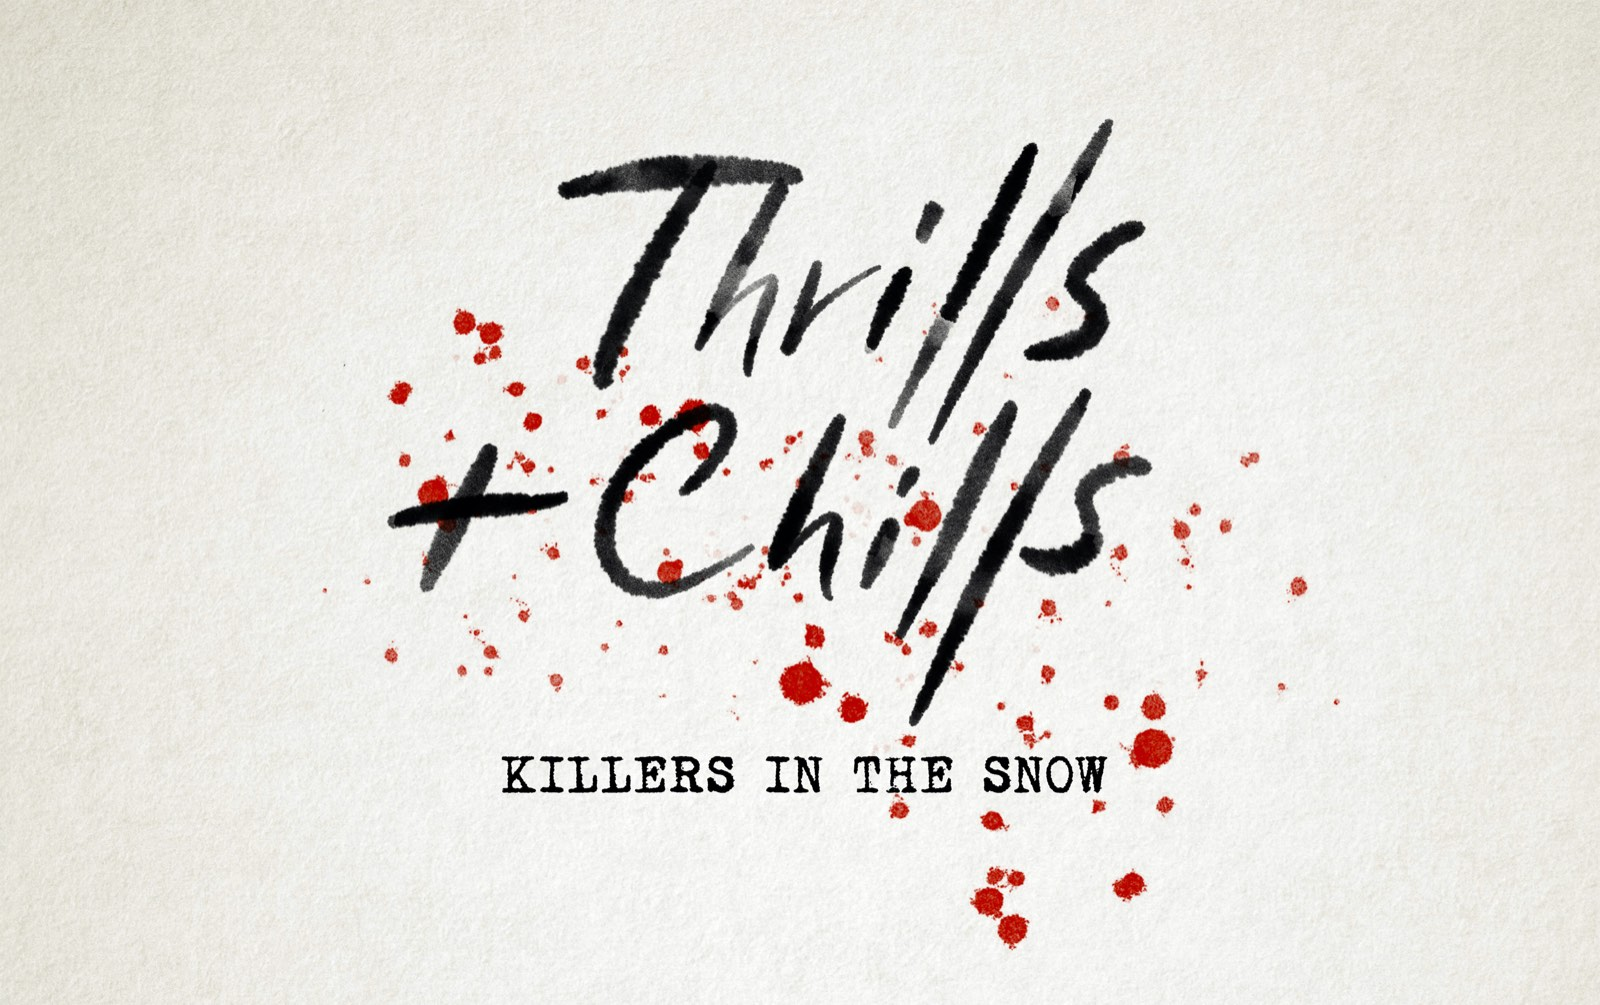 Thrills and Chills: Killers in the Snow